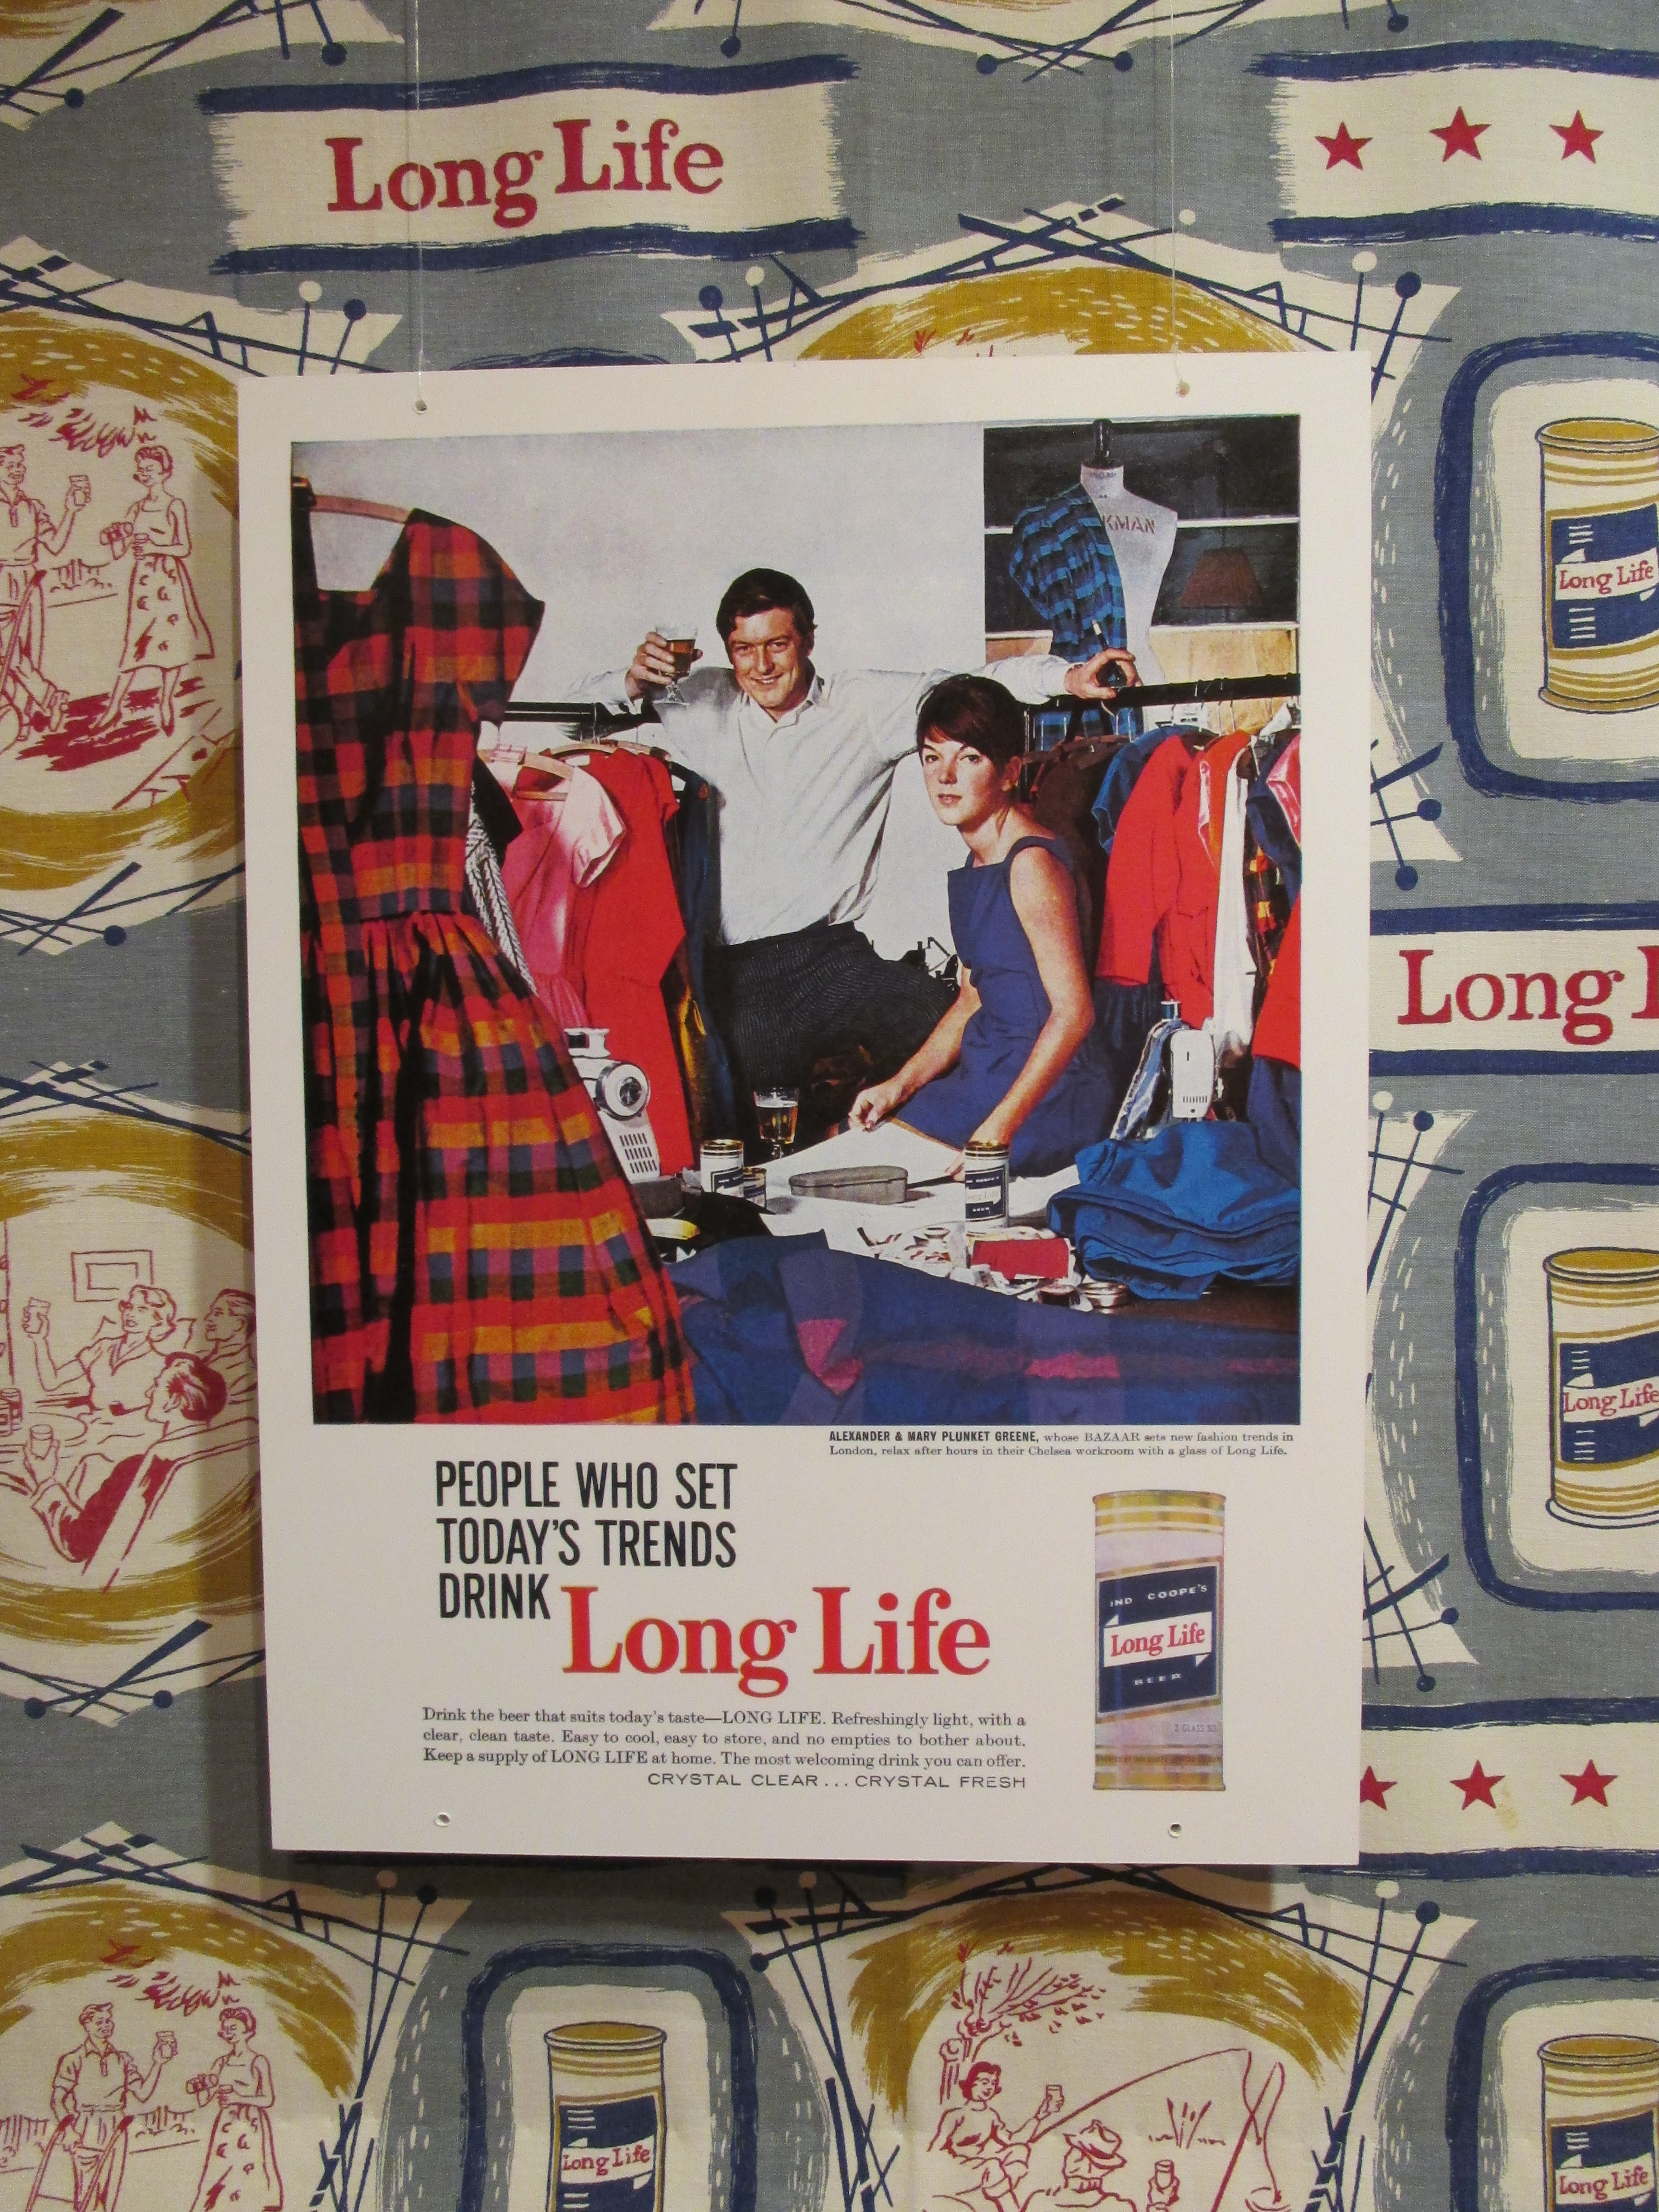 Mary Quant and Terence Conran. Swinging London: A Lifestyle Revolution. Fashion and Textile Museum , London 2019 © Paola Cacciari